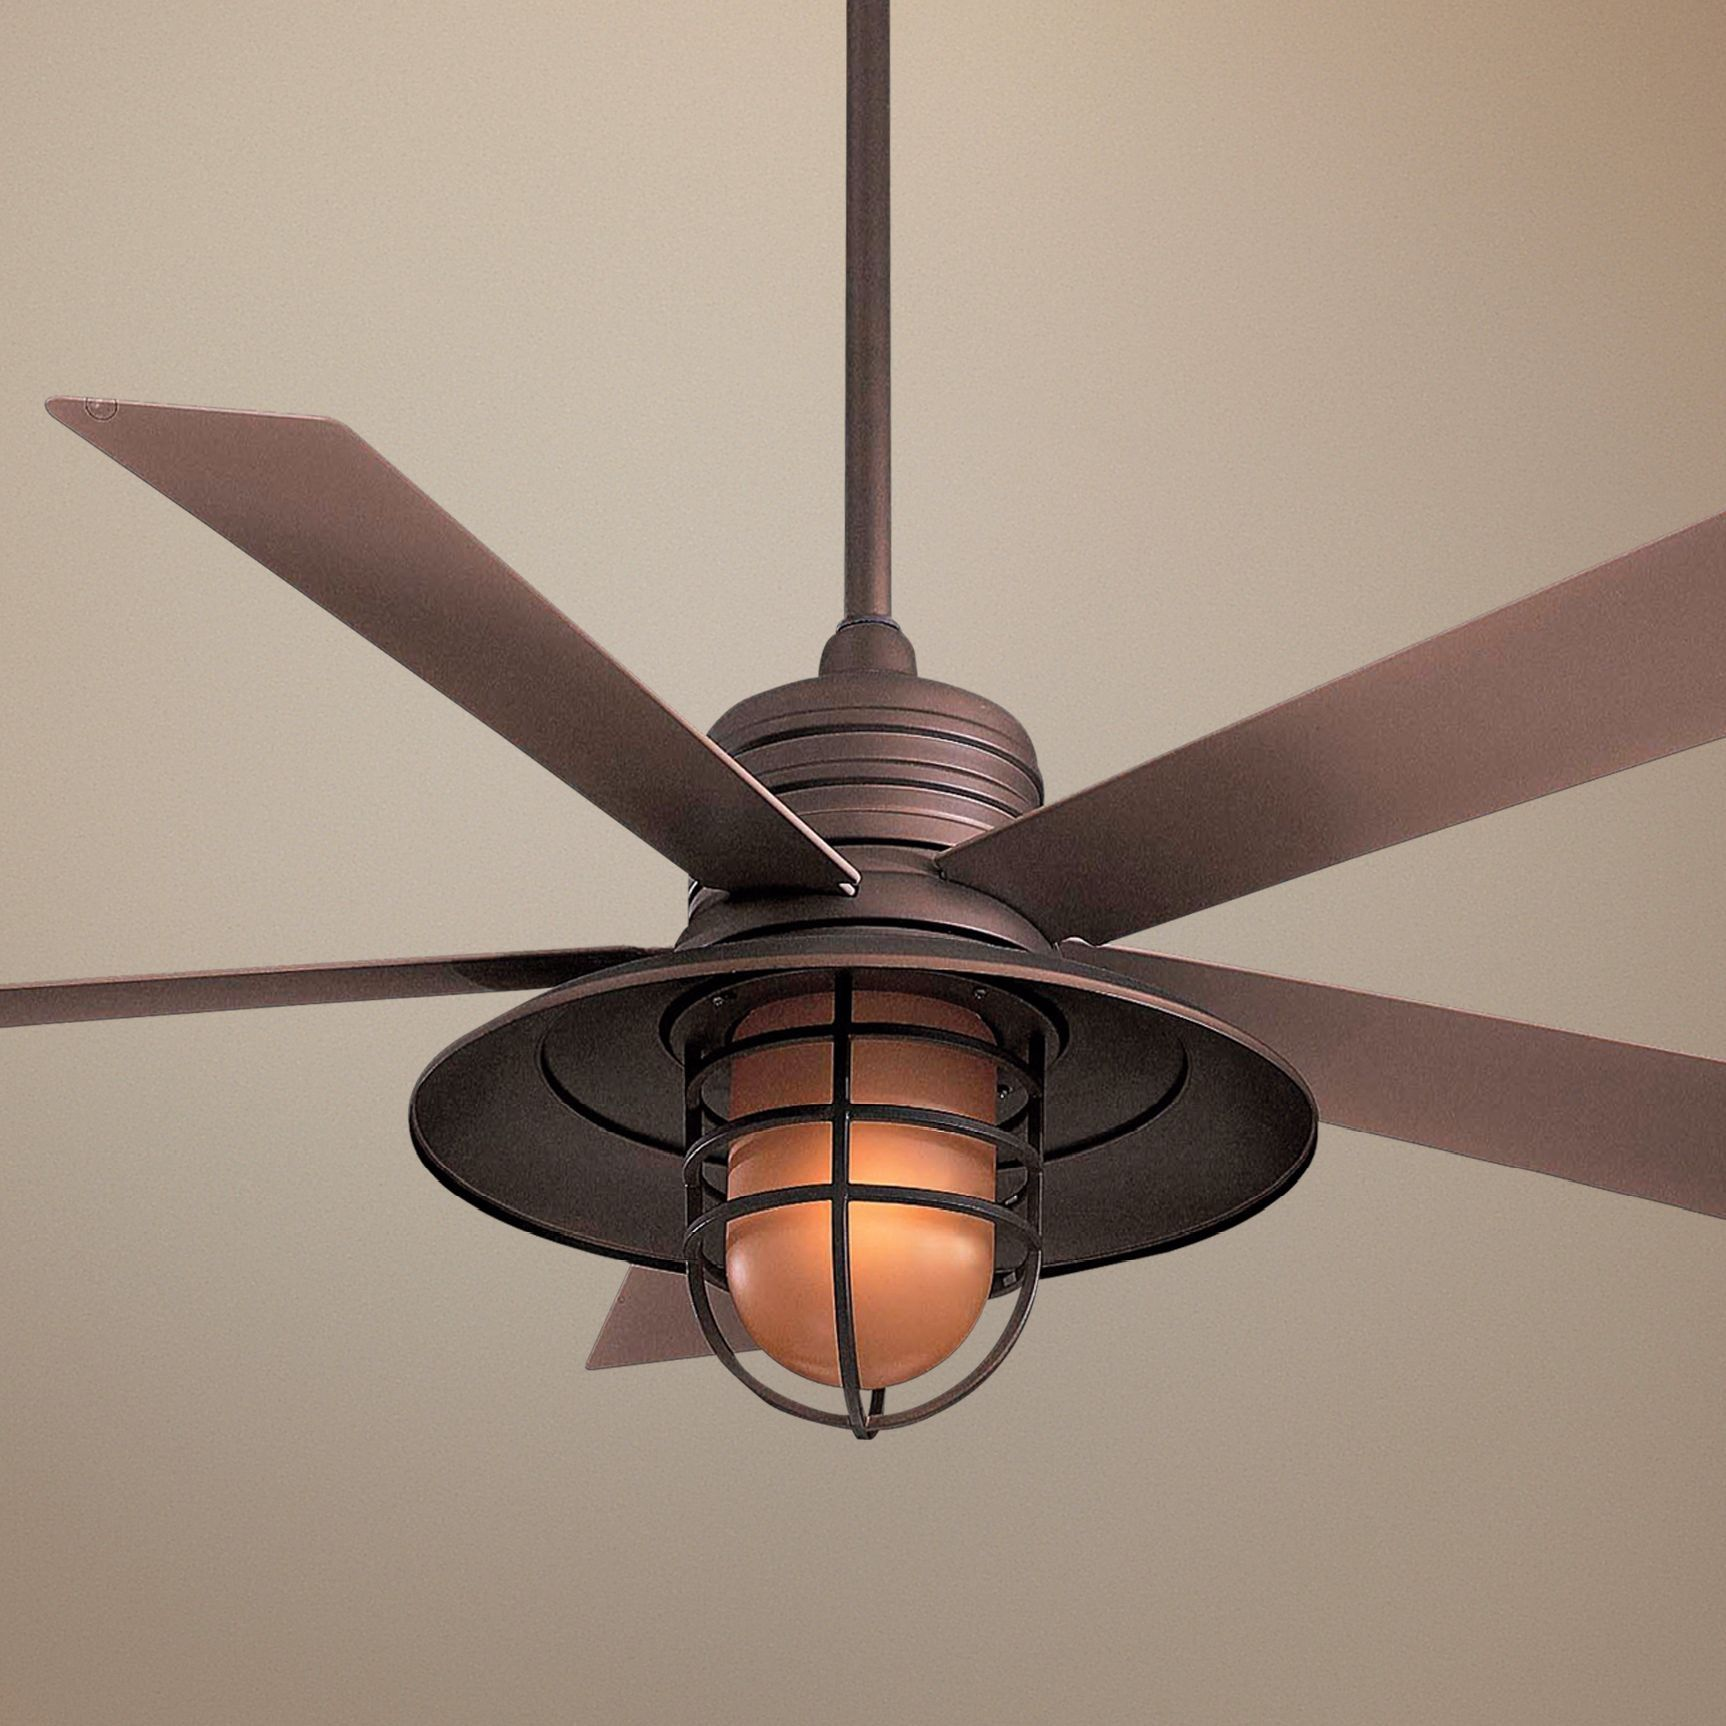 Caged Ceiling Fans With Lights o